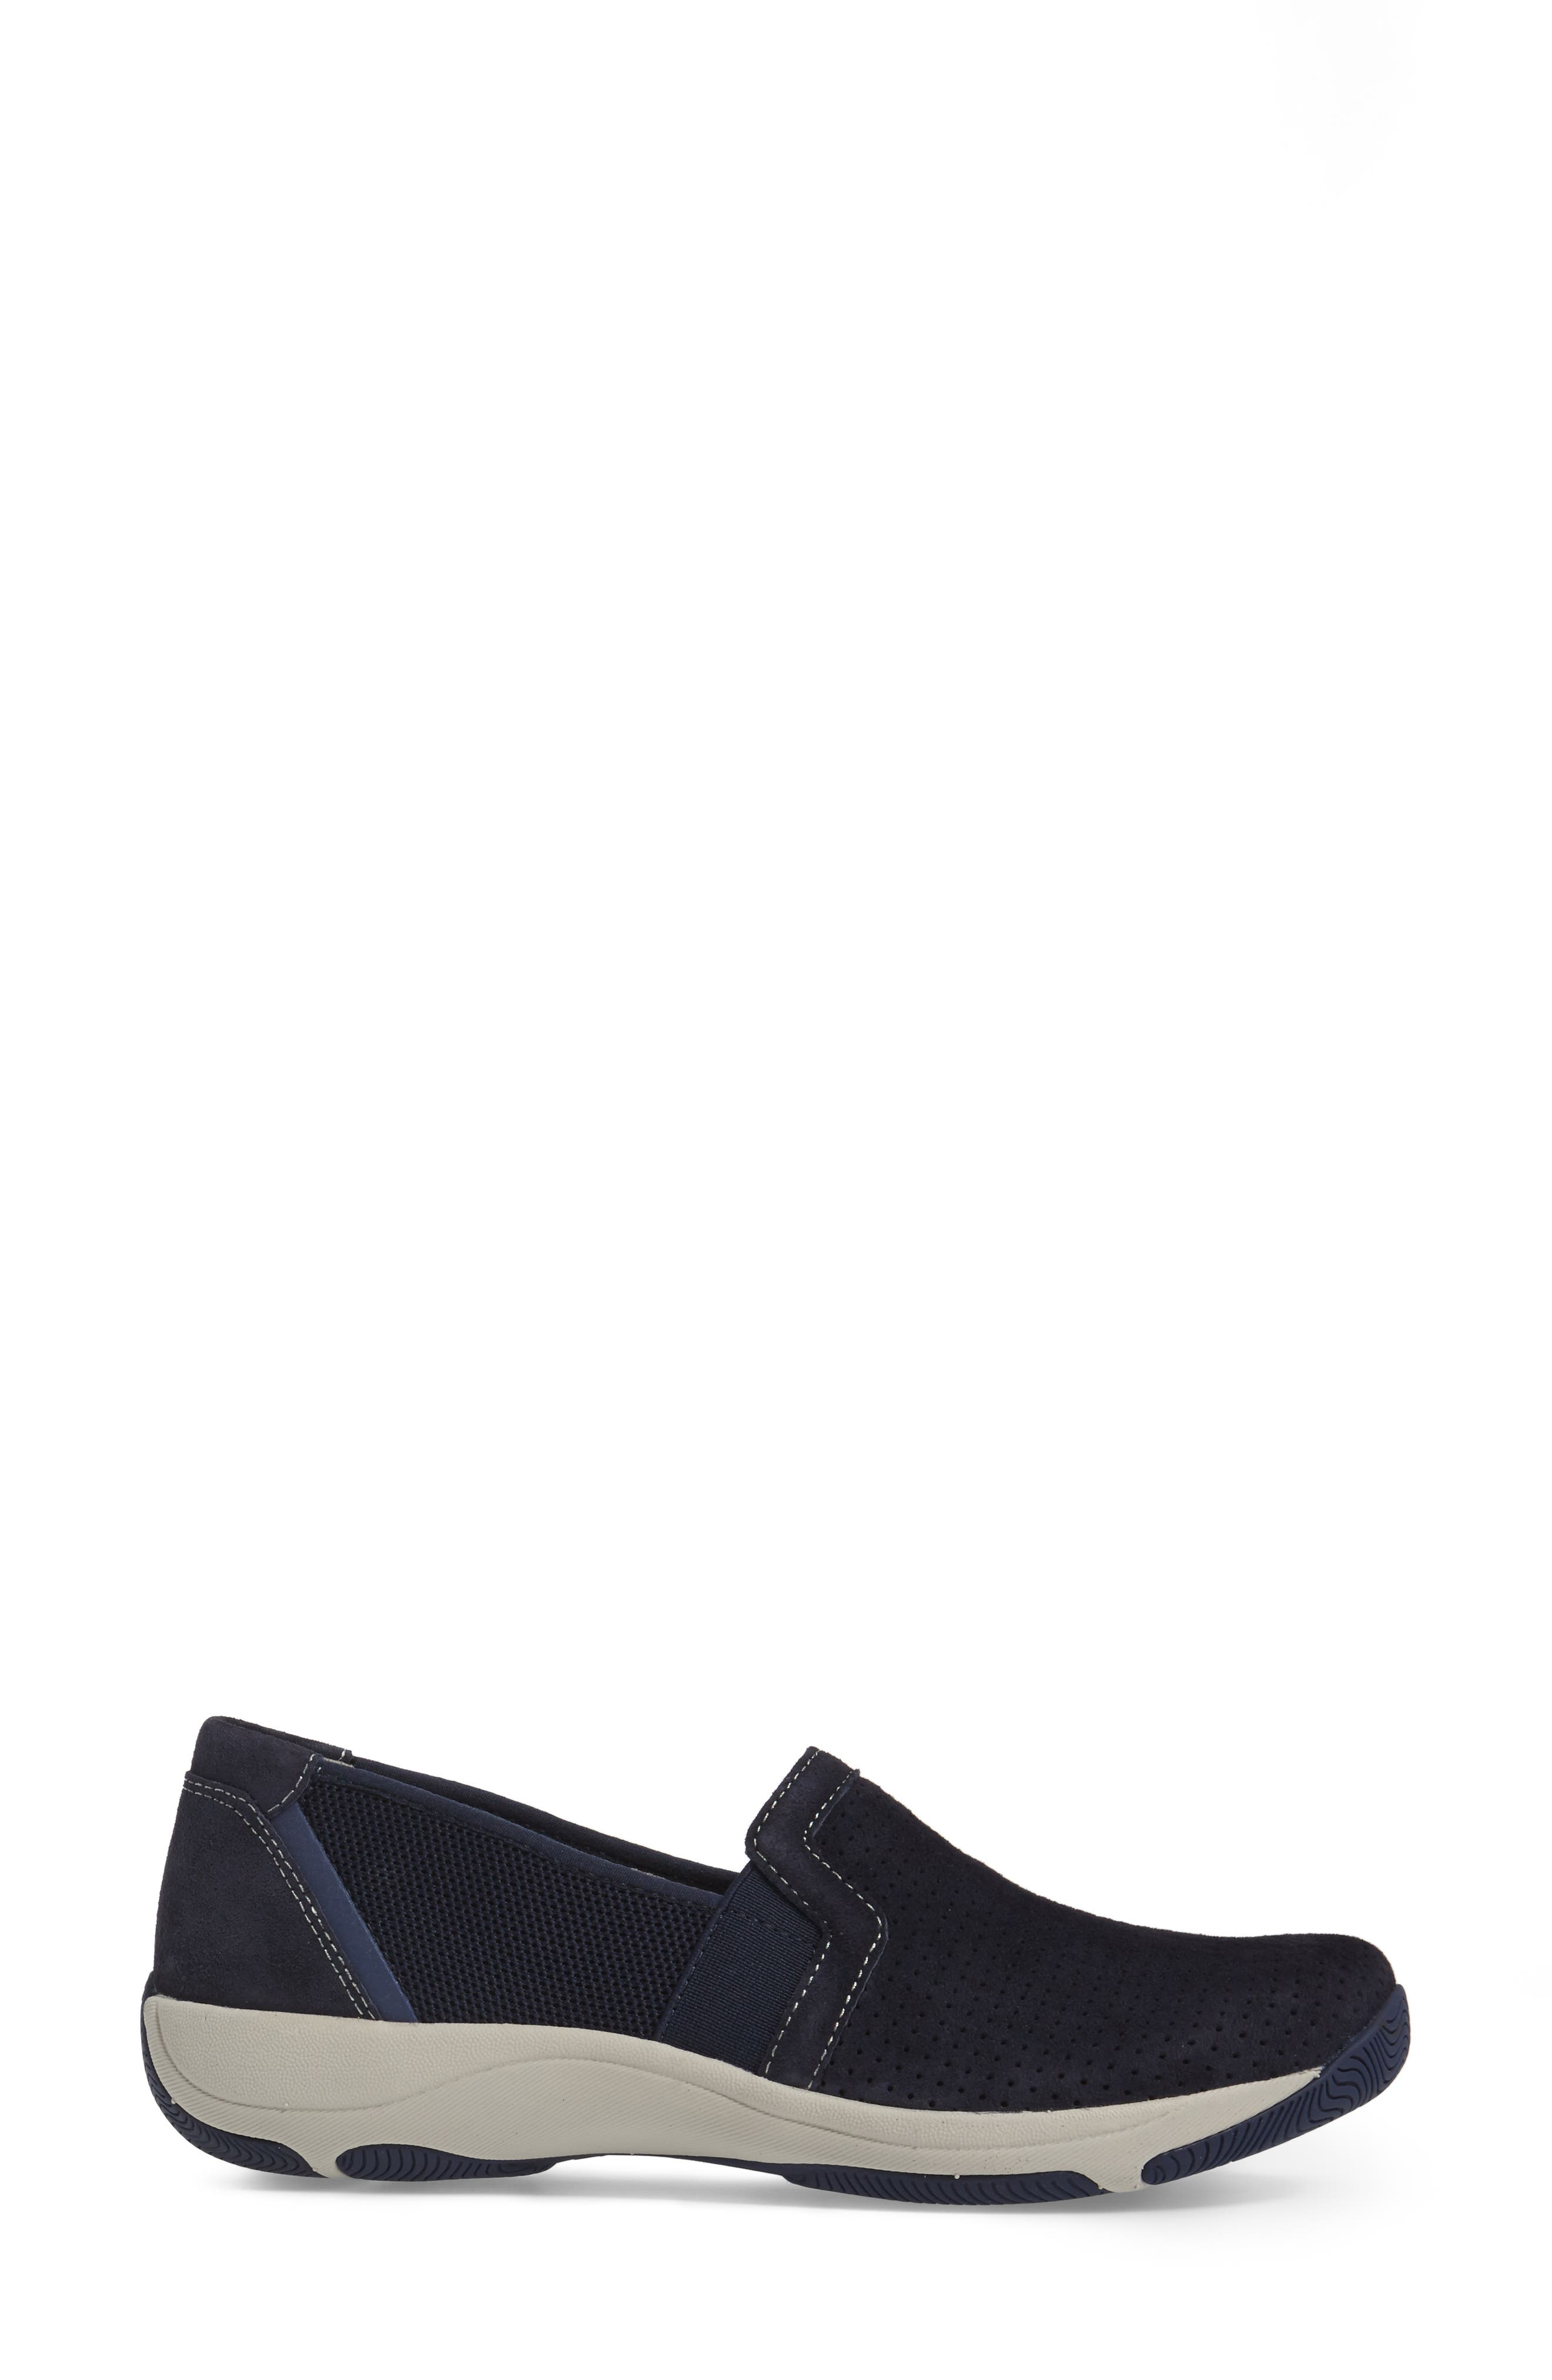 Halifax Collection Halle Slip-On Sneaker,                             Alternate thumbnail 9, color,